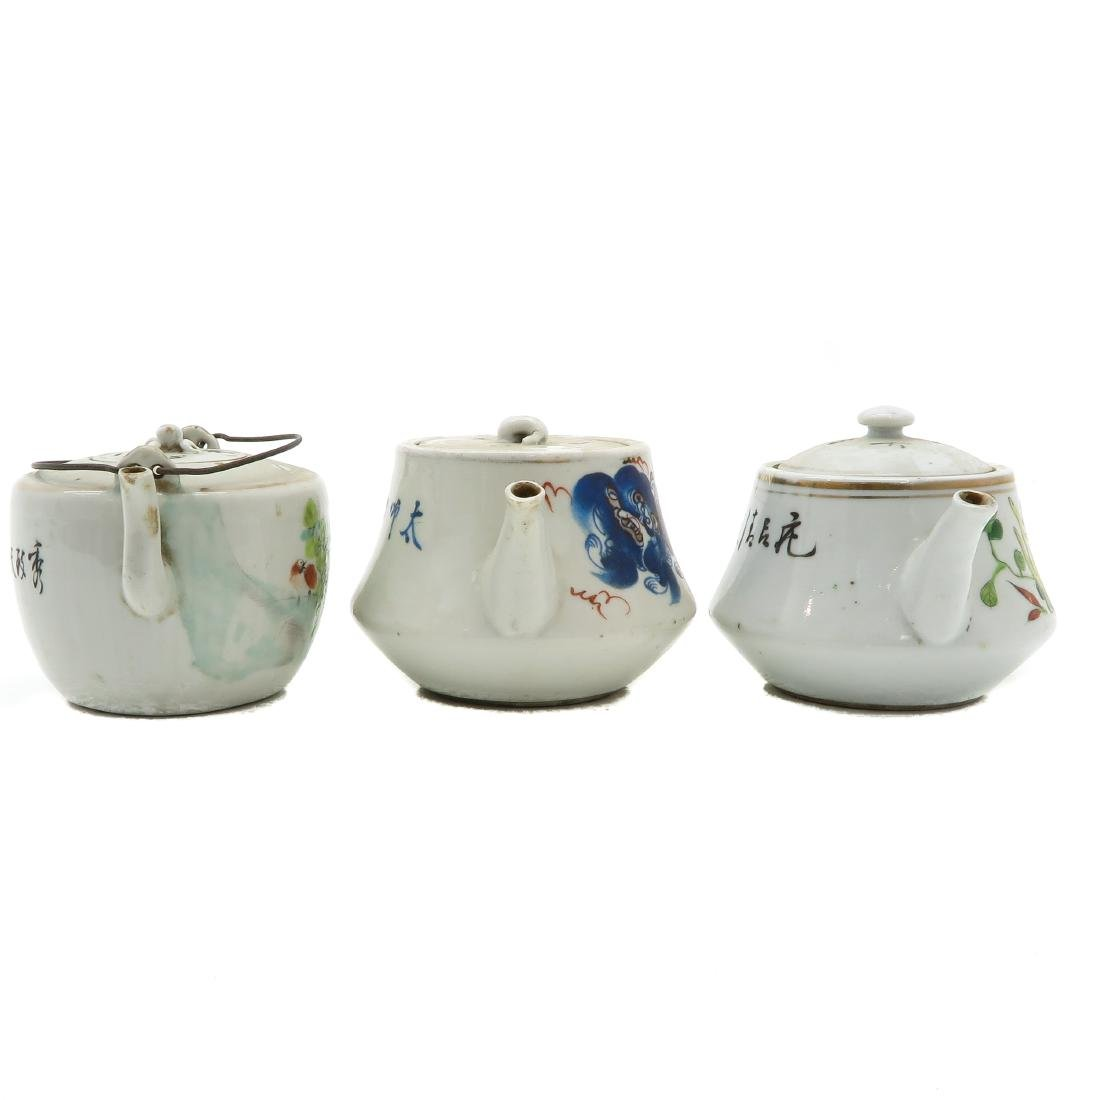 Lot of 3 Teapots - 3